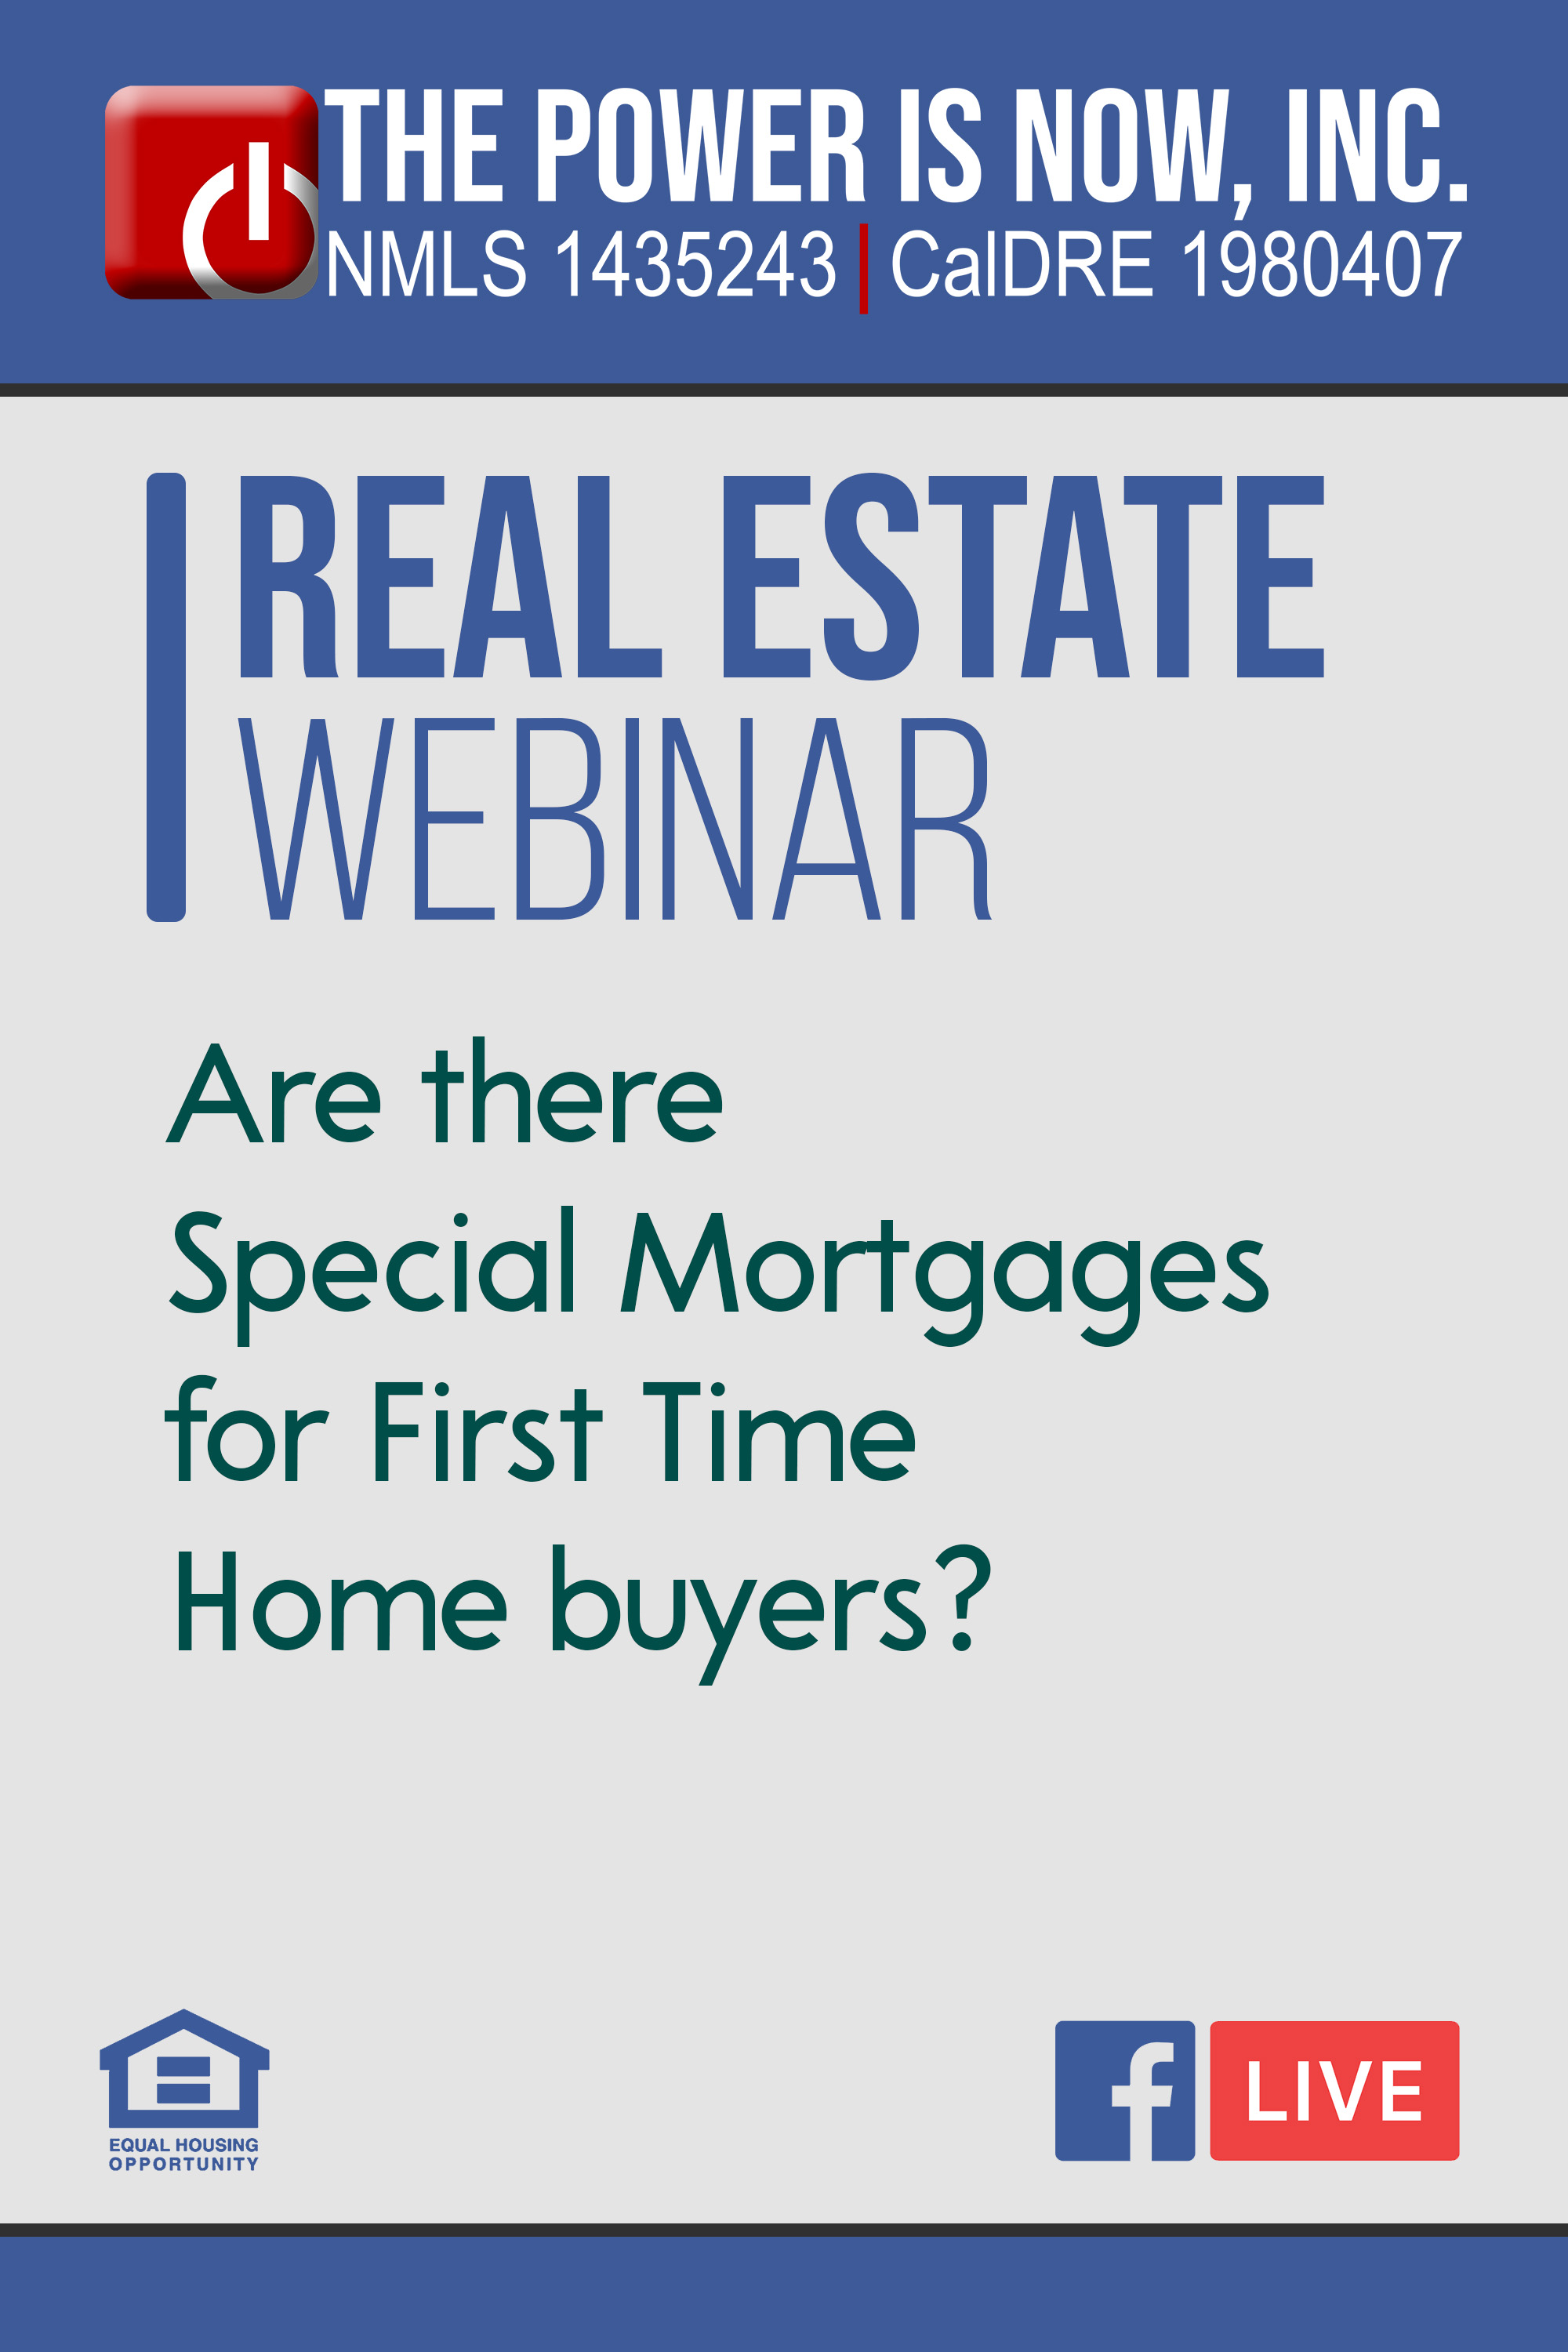 Are there Special Mortgages for First Time Home buyers?